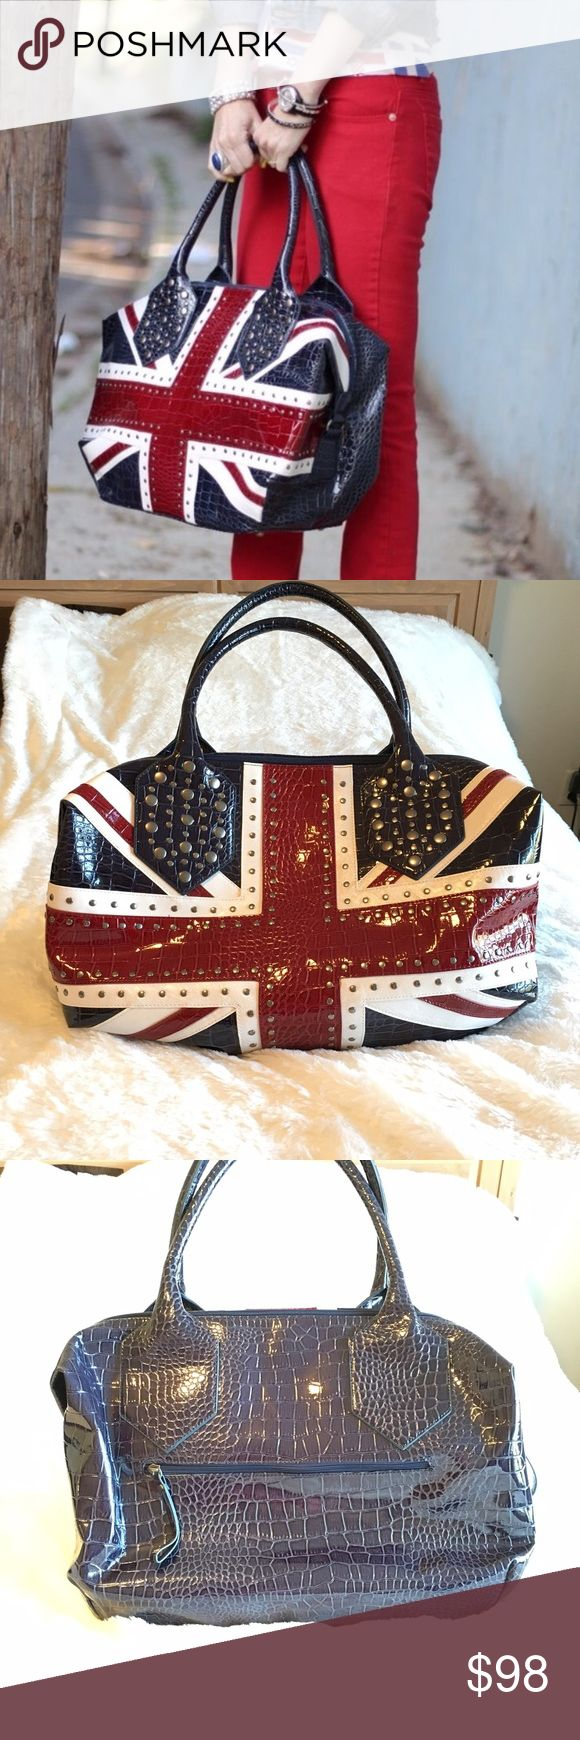 """🆕Twiggy London Union Jack Studded Weekender Bag Absolutely amazing bag!! Twiggy London Union Jack studded weekender bag. In like new condition. Super roomy with interior zipper pocket. Gorgeous studs. An eye-catcher for sure! Measures 20""""x14""""x7.5"""". ❌NO TRADES❌NO LOWBALLING❌ **borrowed this first pic with permission, all the rest are mine. Twiggy London Bags Travel Bags"""